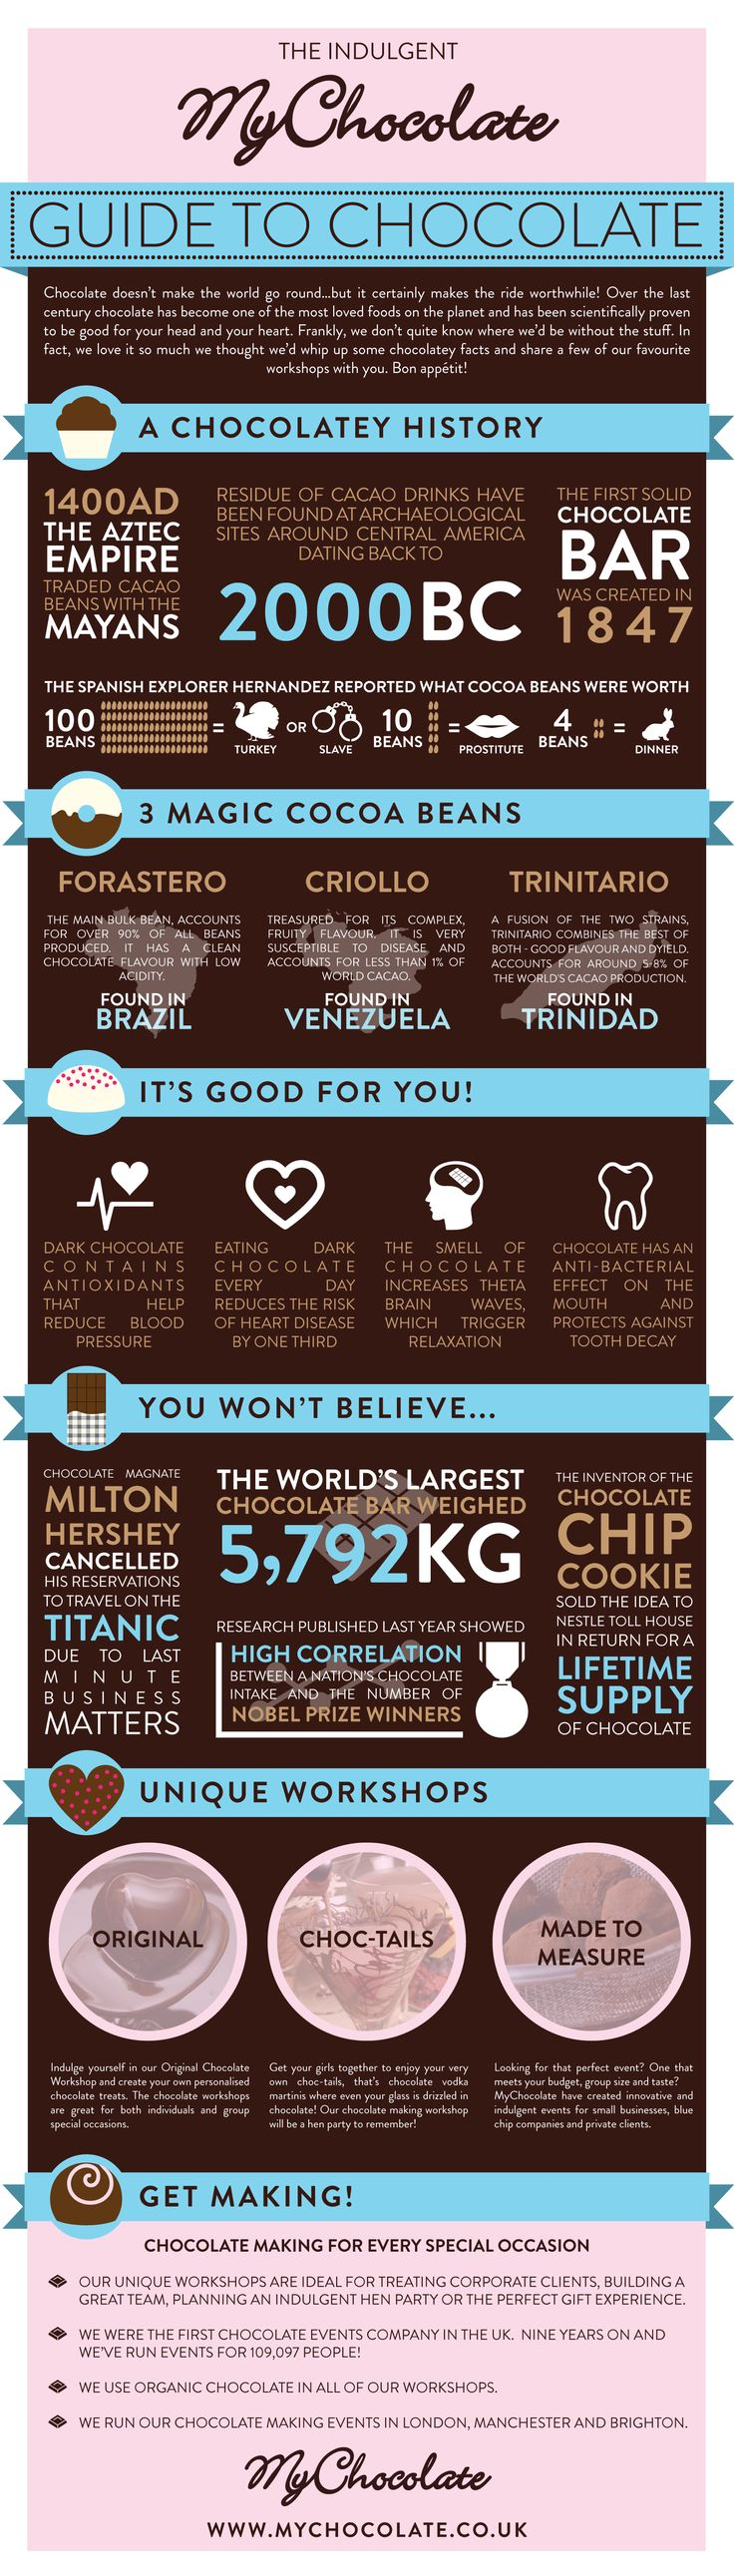 A Guide to Chocolate